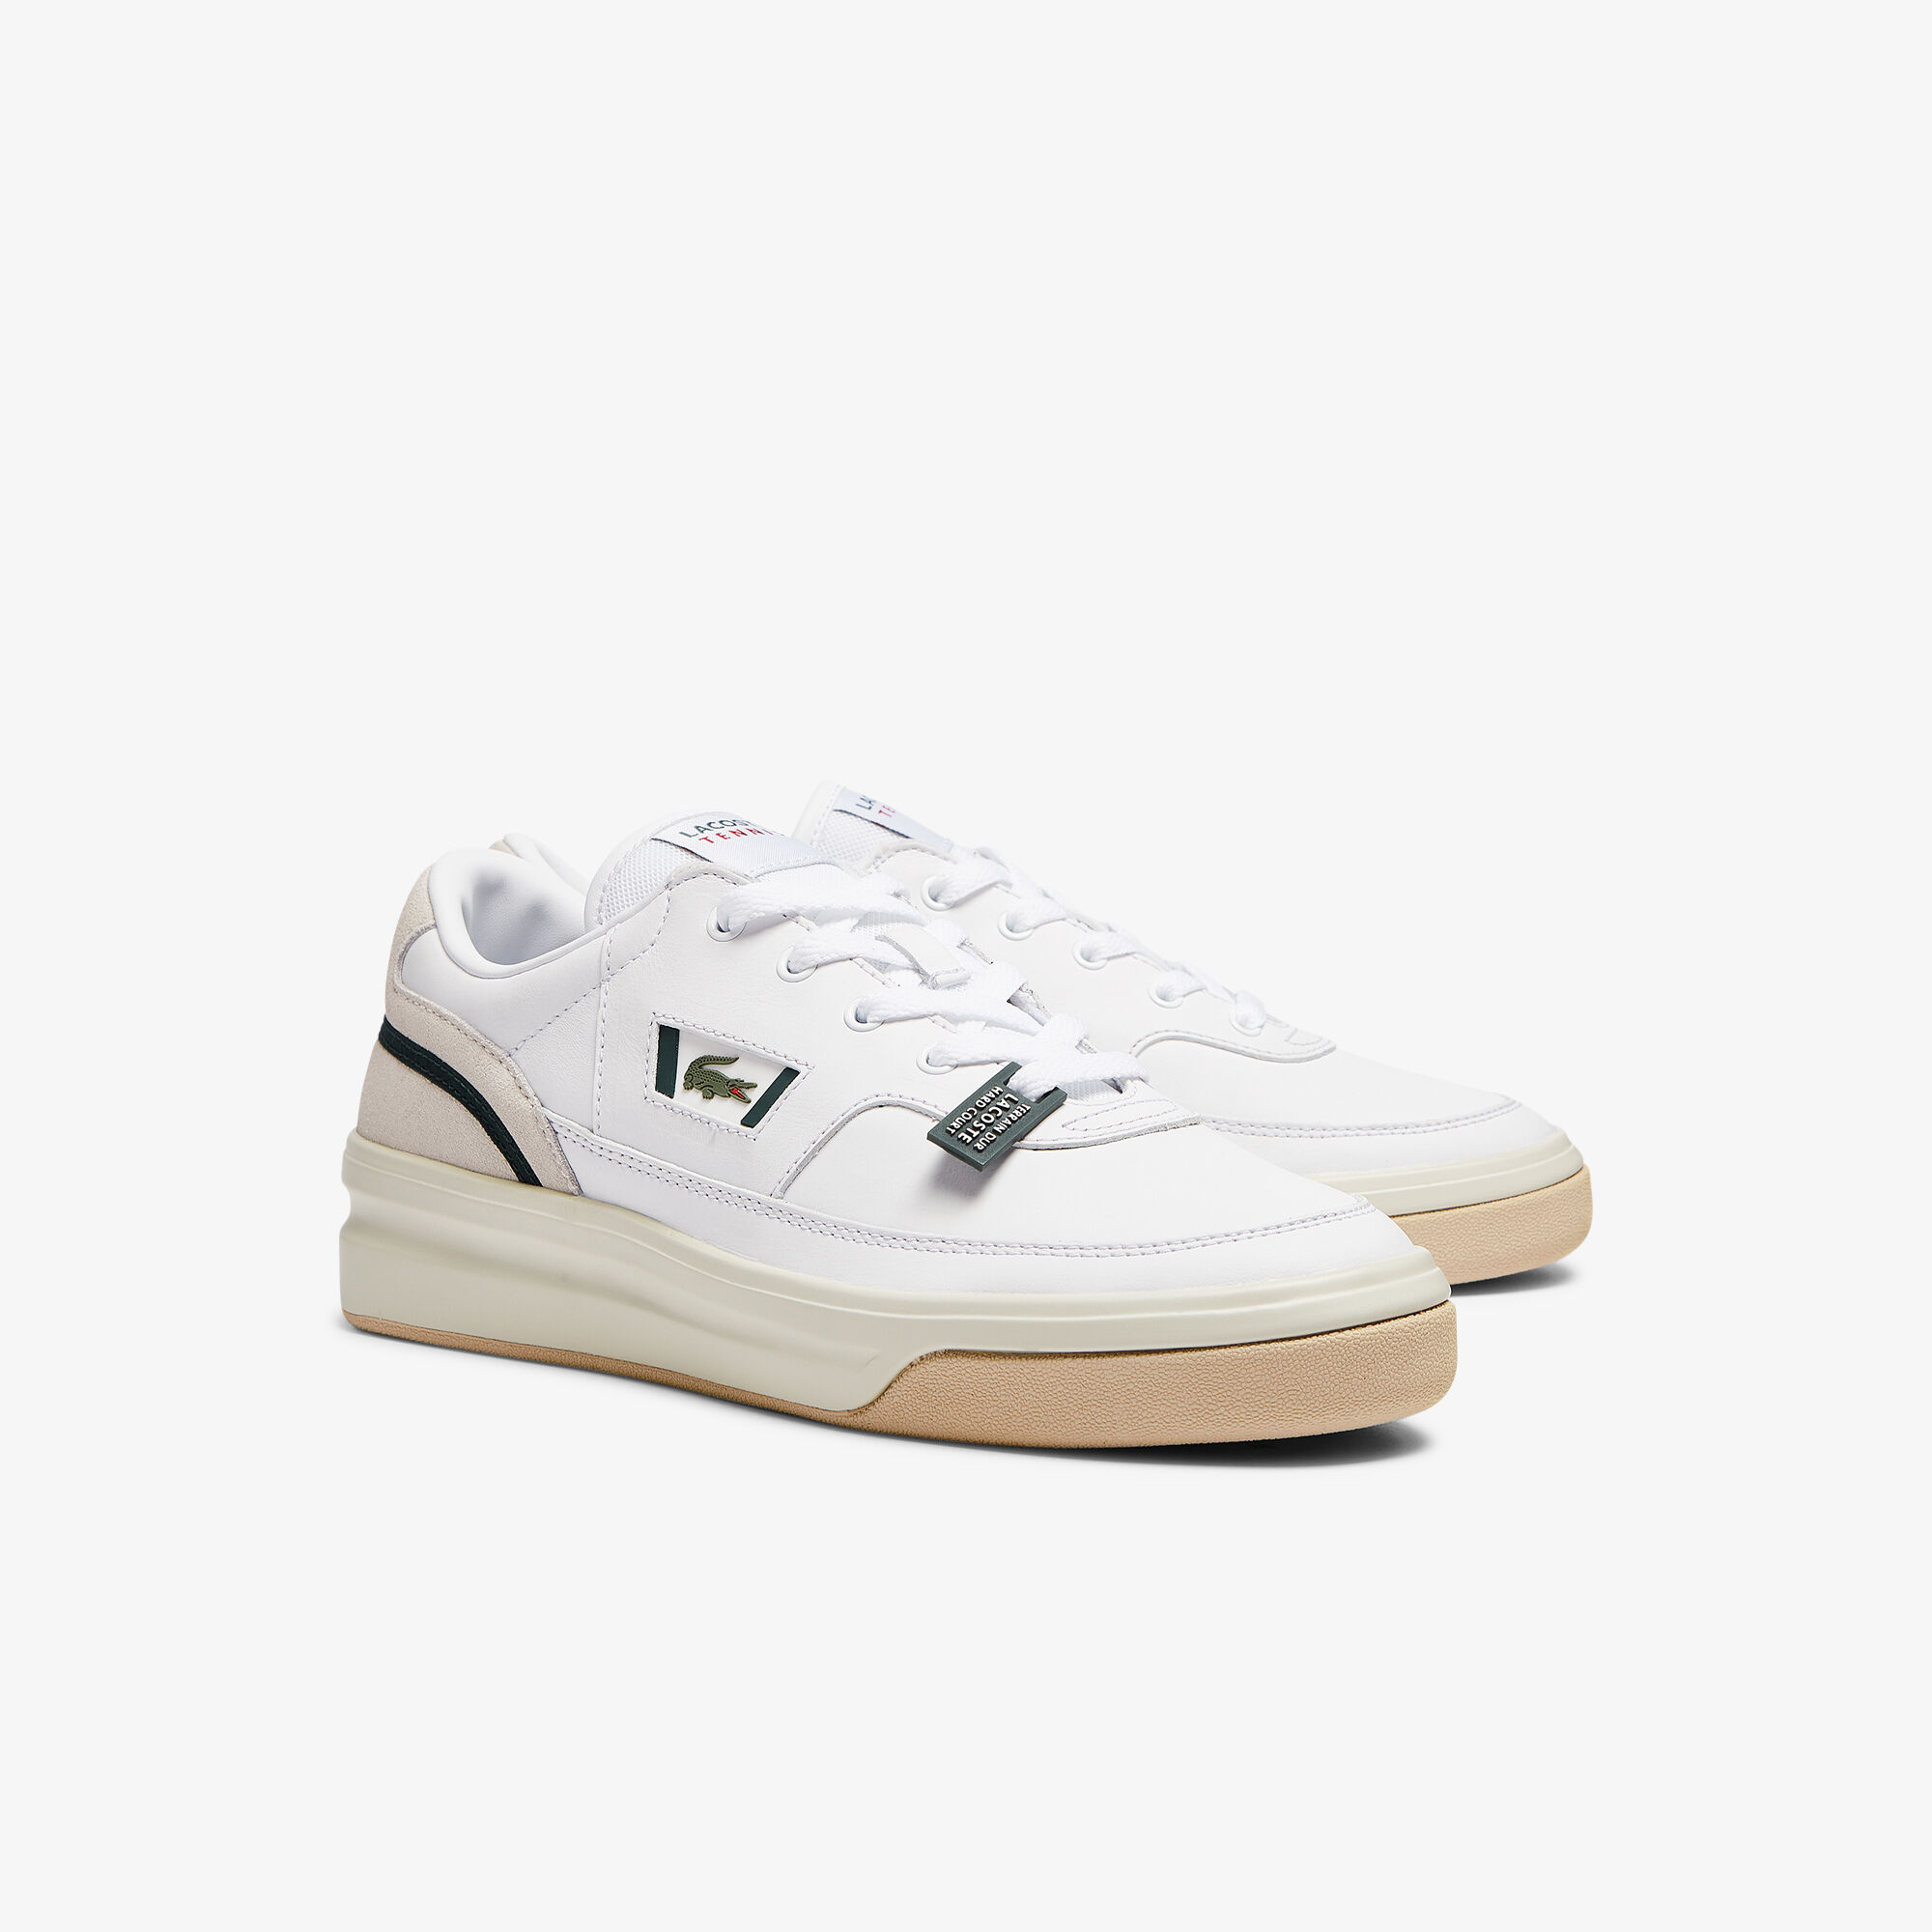 Men's G80 Leather and Suede Trainers